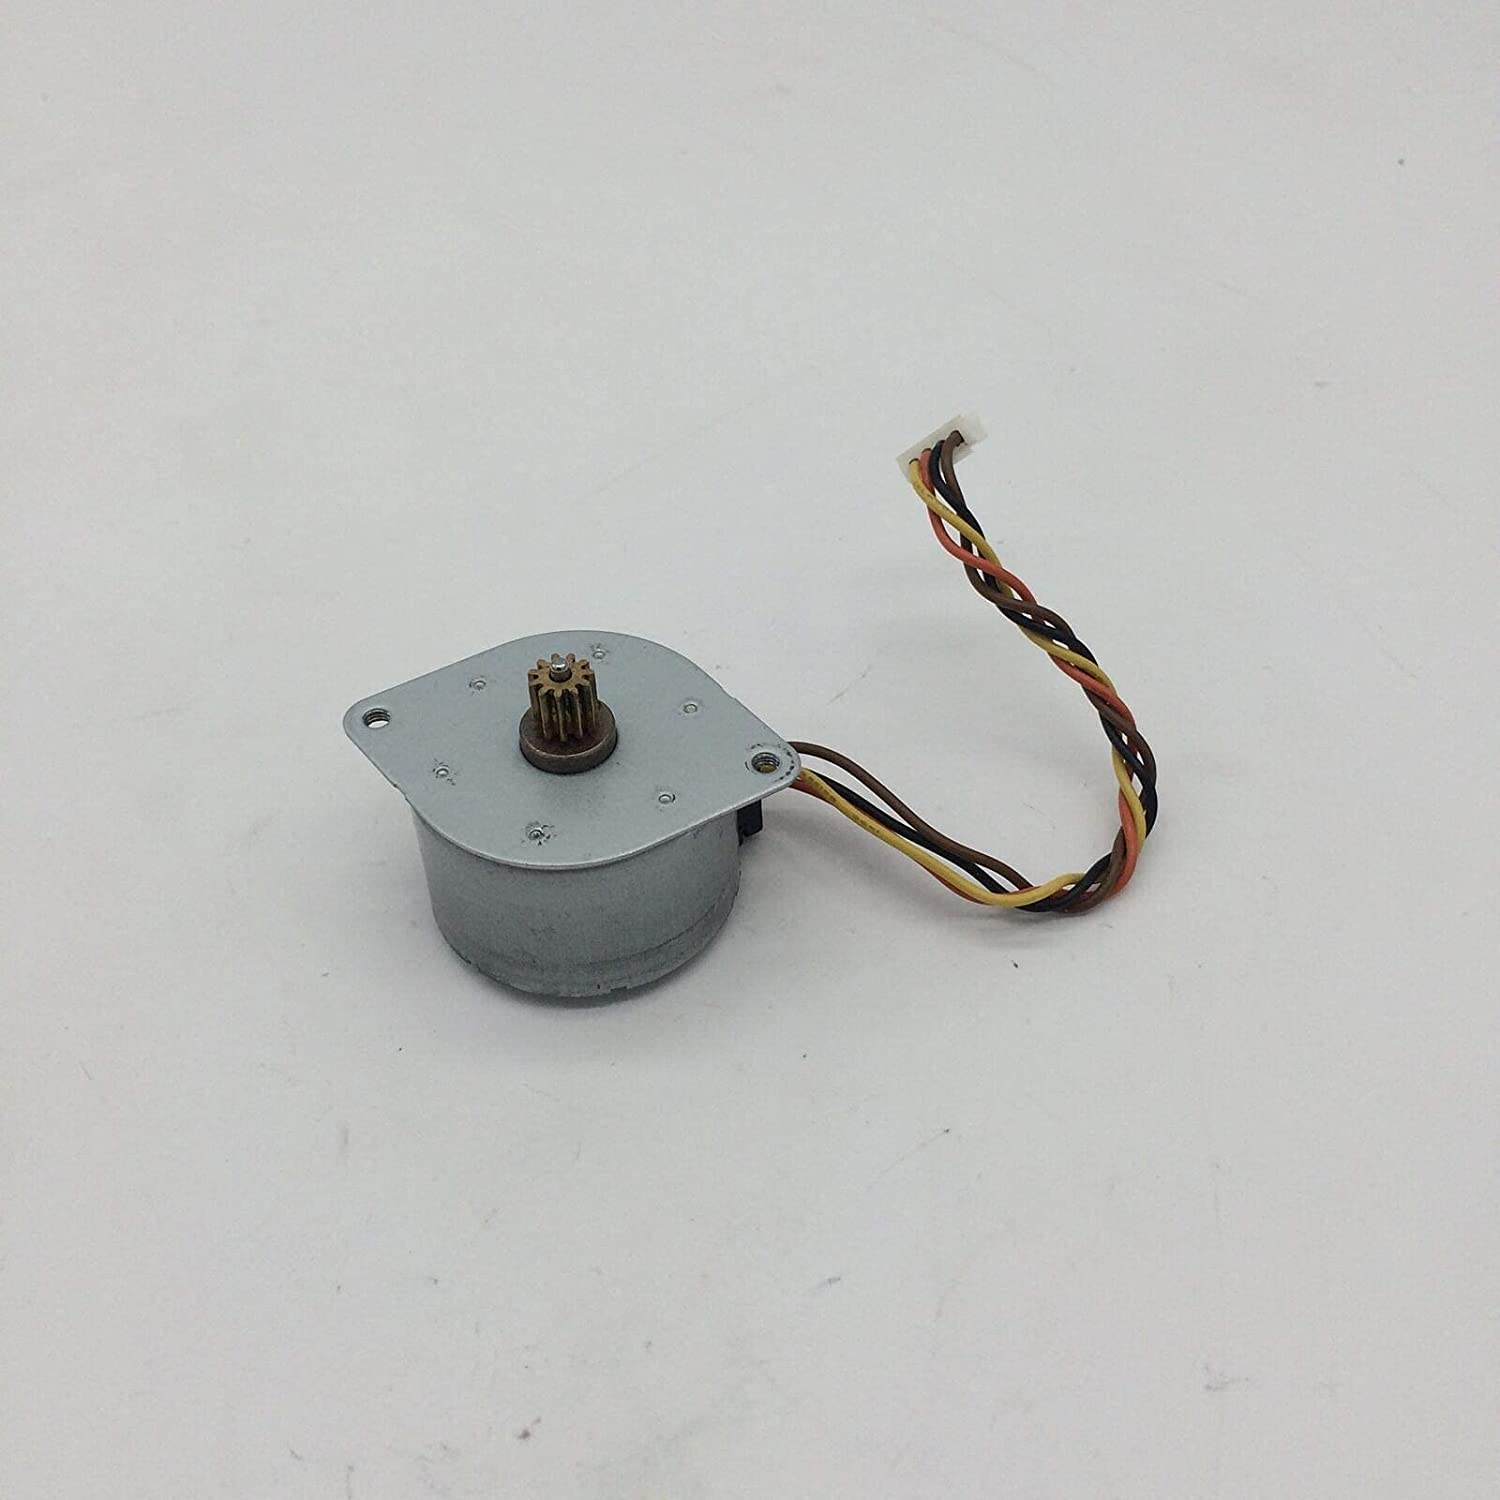 Replacement Parts Accessories for Printer Stepping Motor Replacement Compatible with Zebra Zp 500